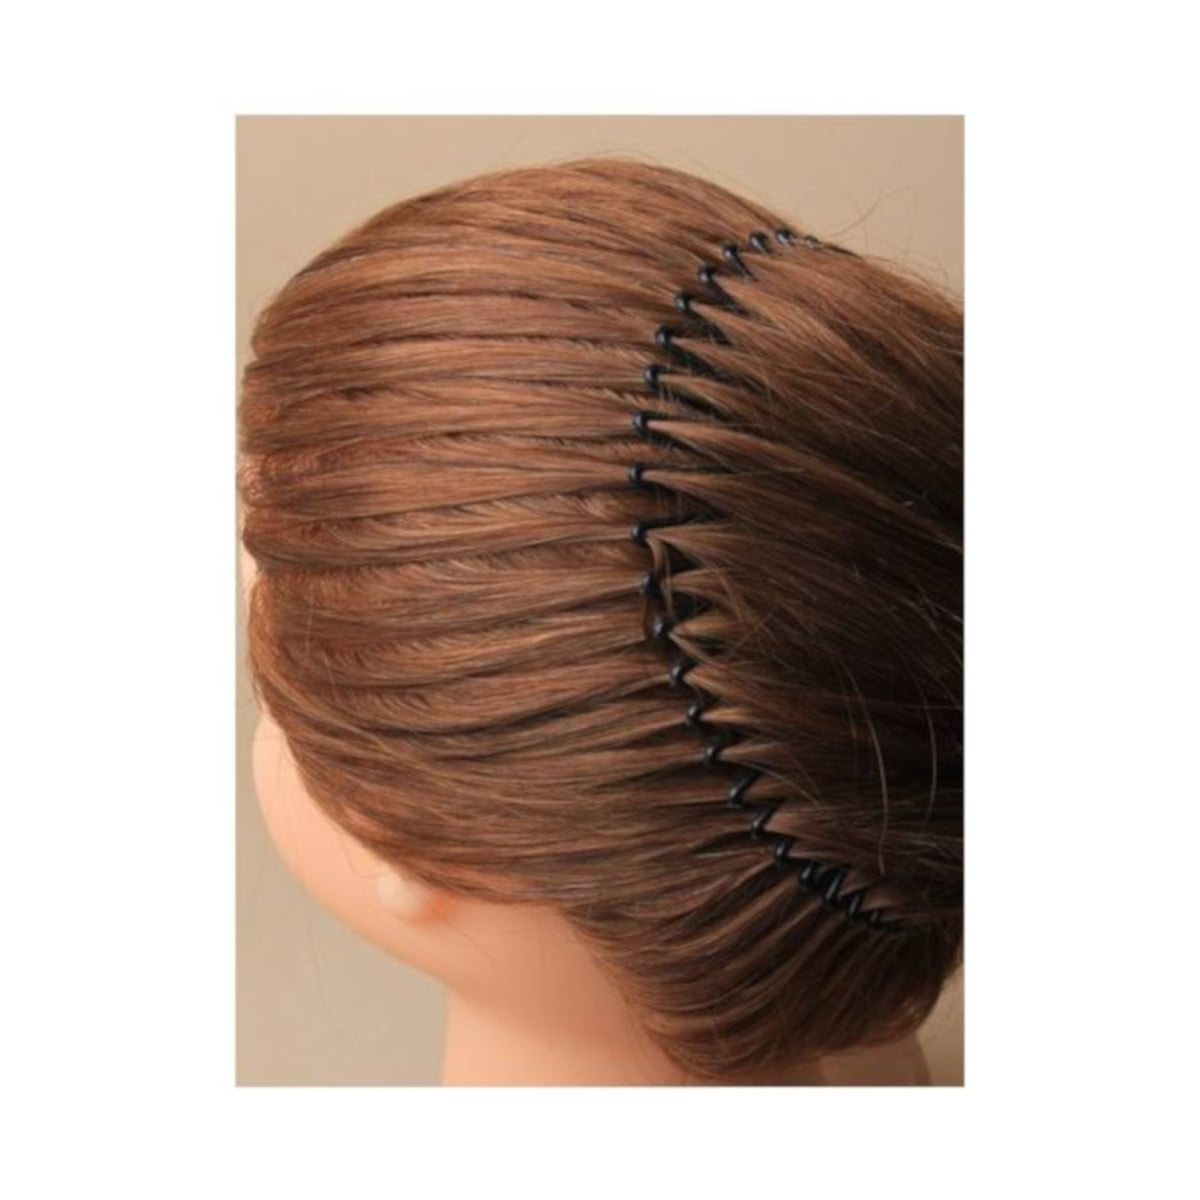 Black stretchy hair comb on model